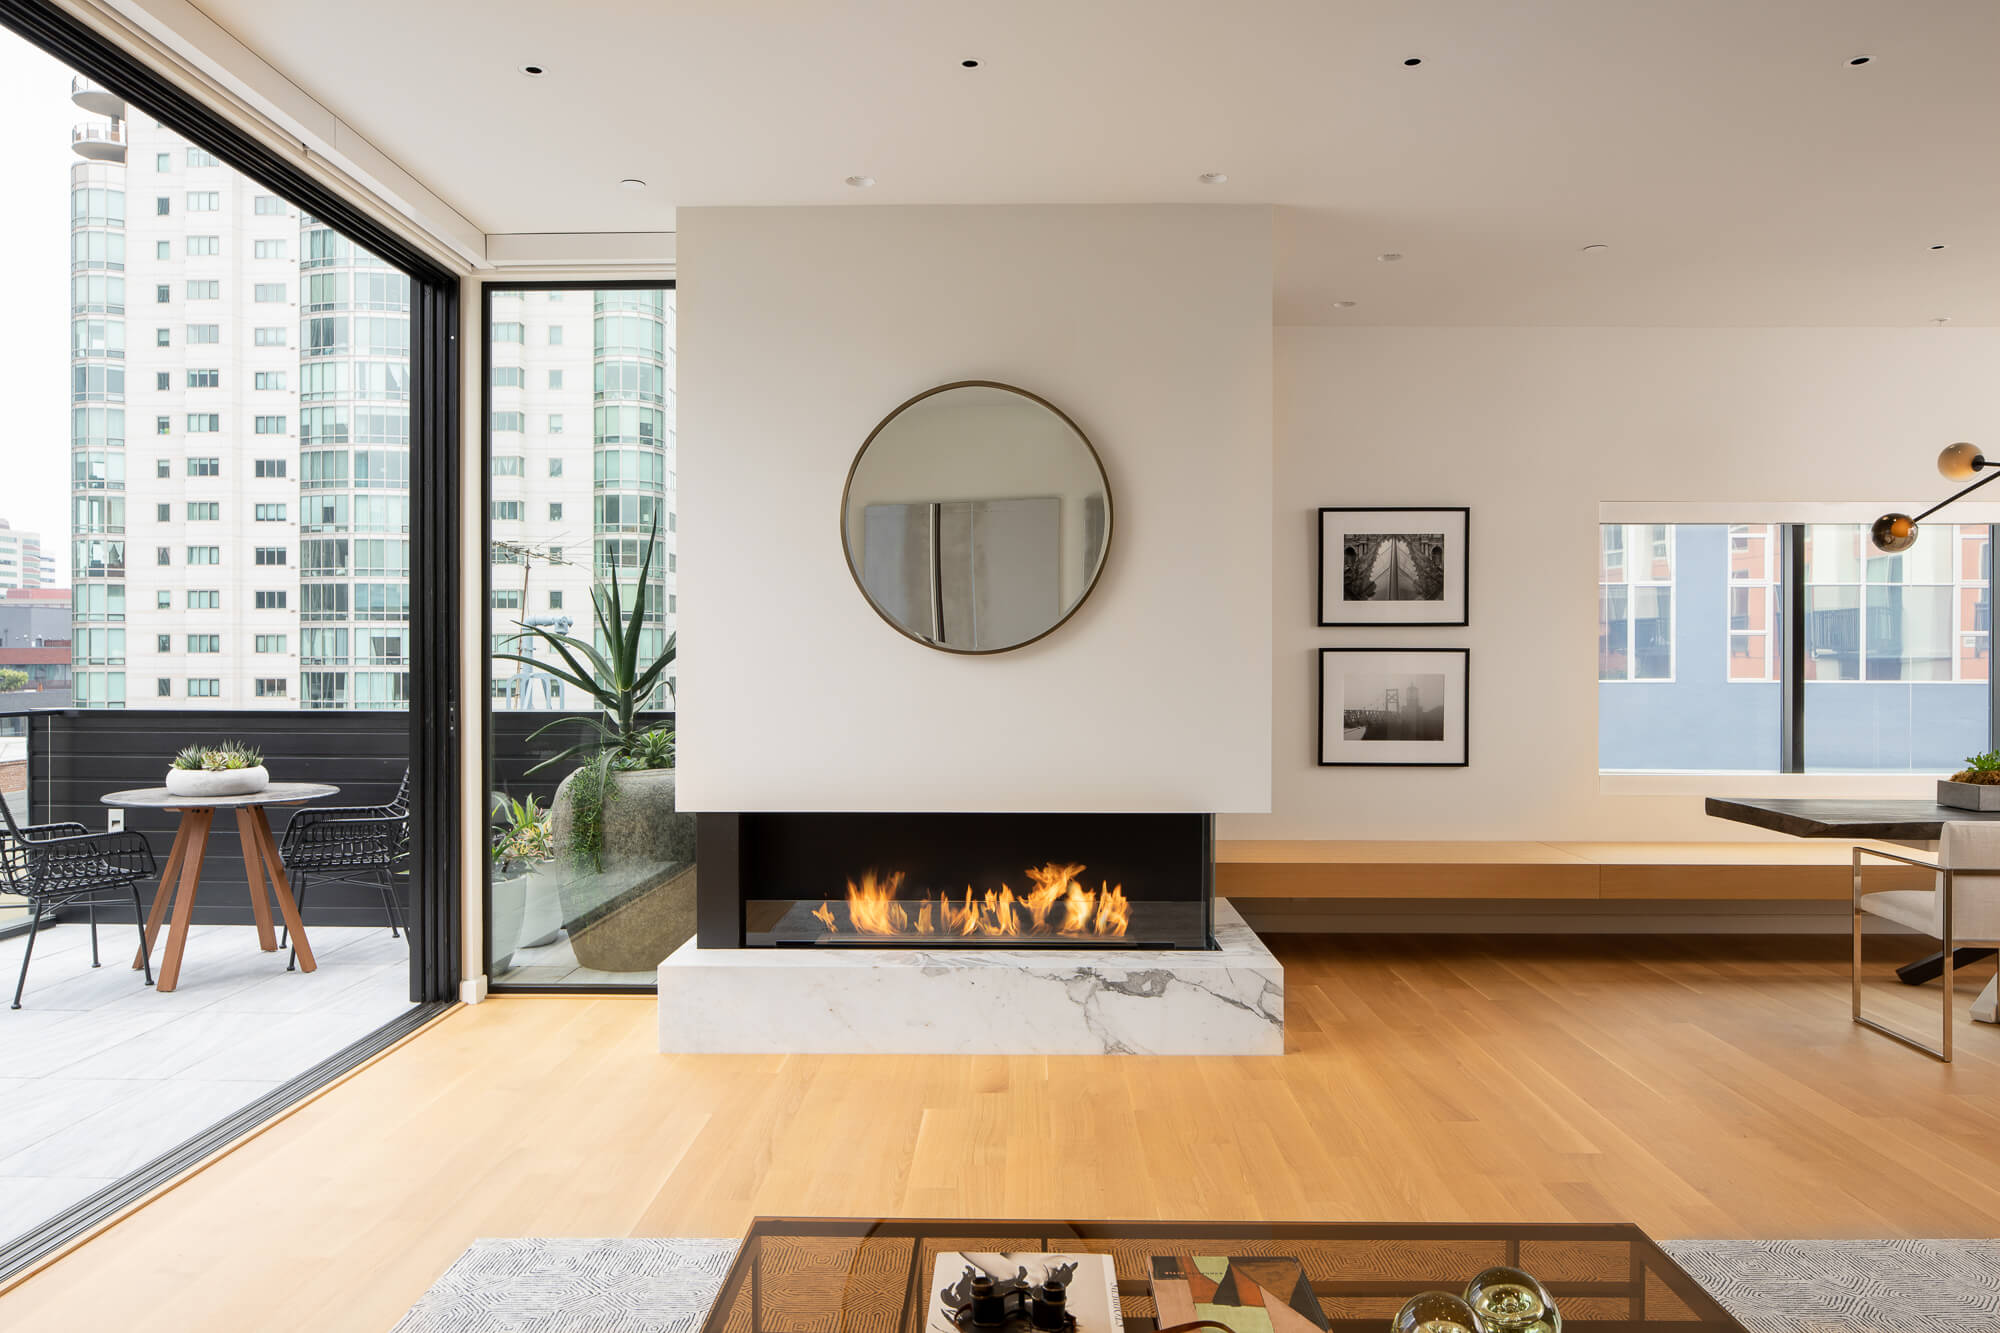 Living room with fireplace and floor to ceiling glass doors that are open, rift sawn white oak flooring.